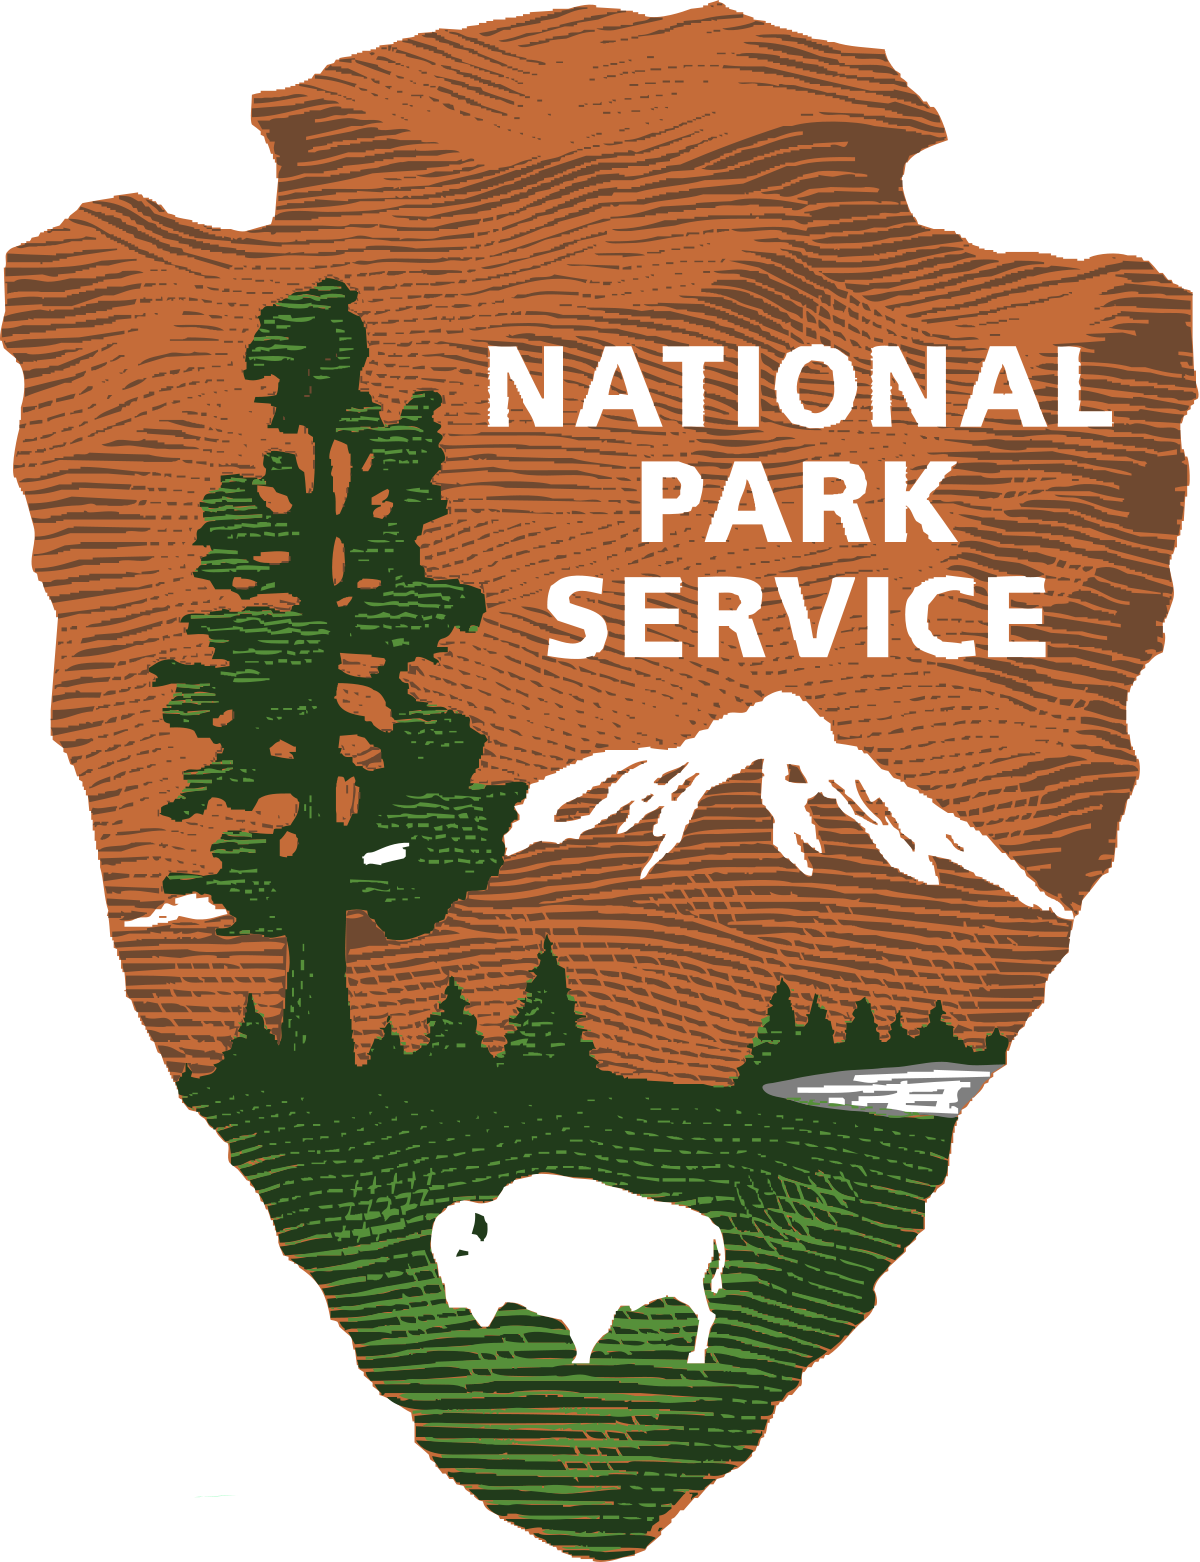 National park service wikipedia. Clipart definition database